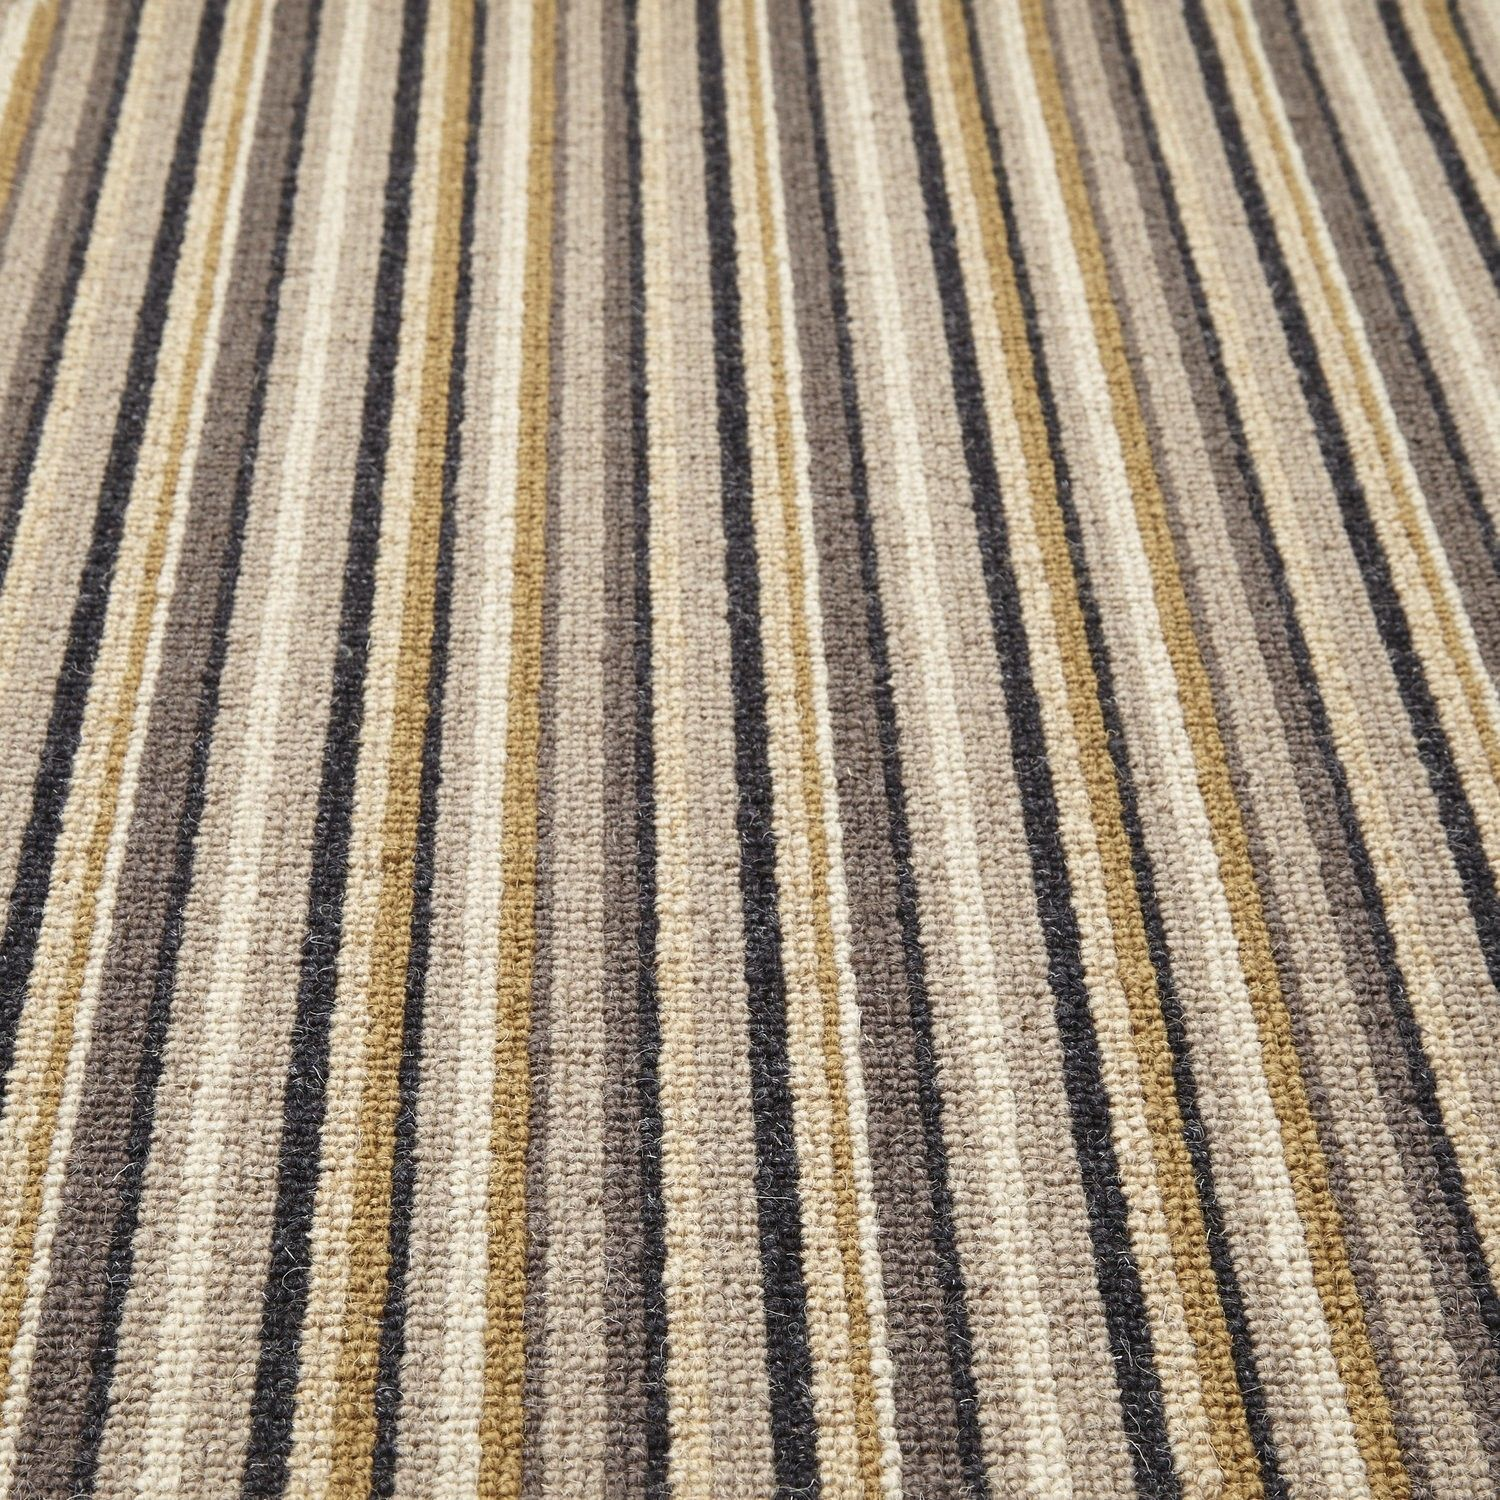 Best Camden Wool Carpet Striped Carpets Striped Carpet 400 x 300